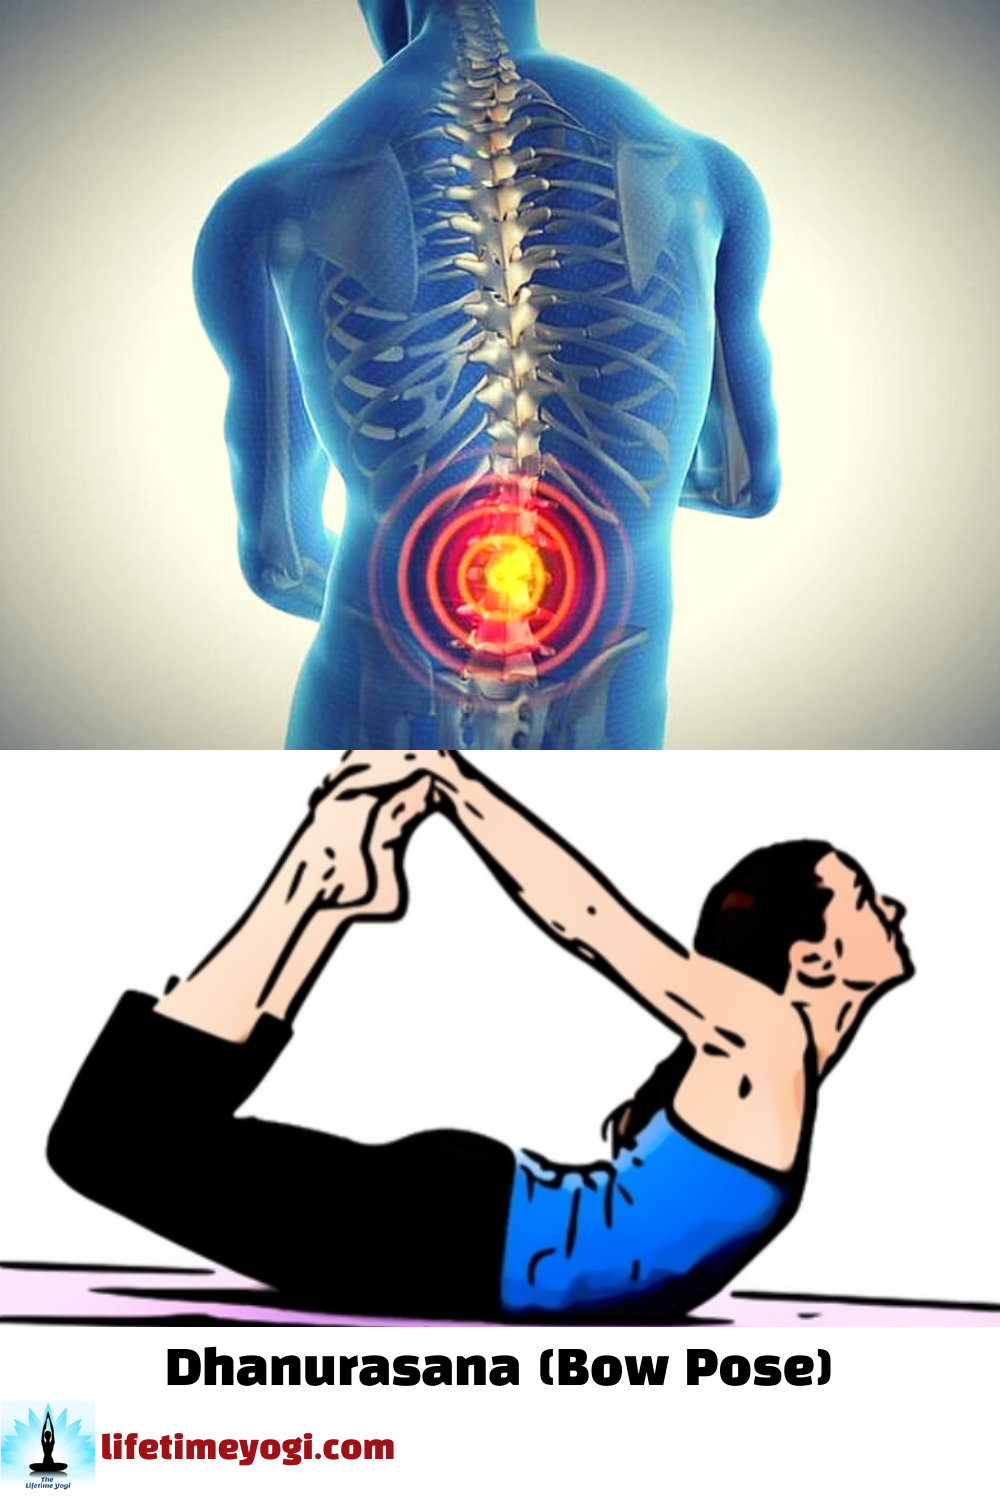 How to Get Relief from Excruciating Lower Back Pain for Aged Person? Top 5 Yoga Posture for Back Pain Relief & Prevention